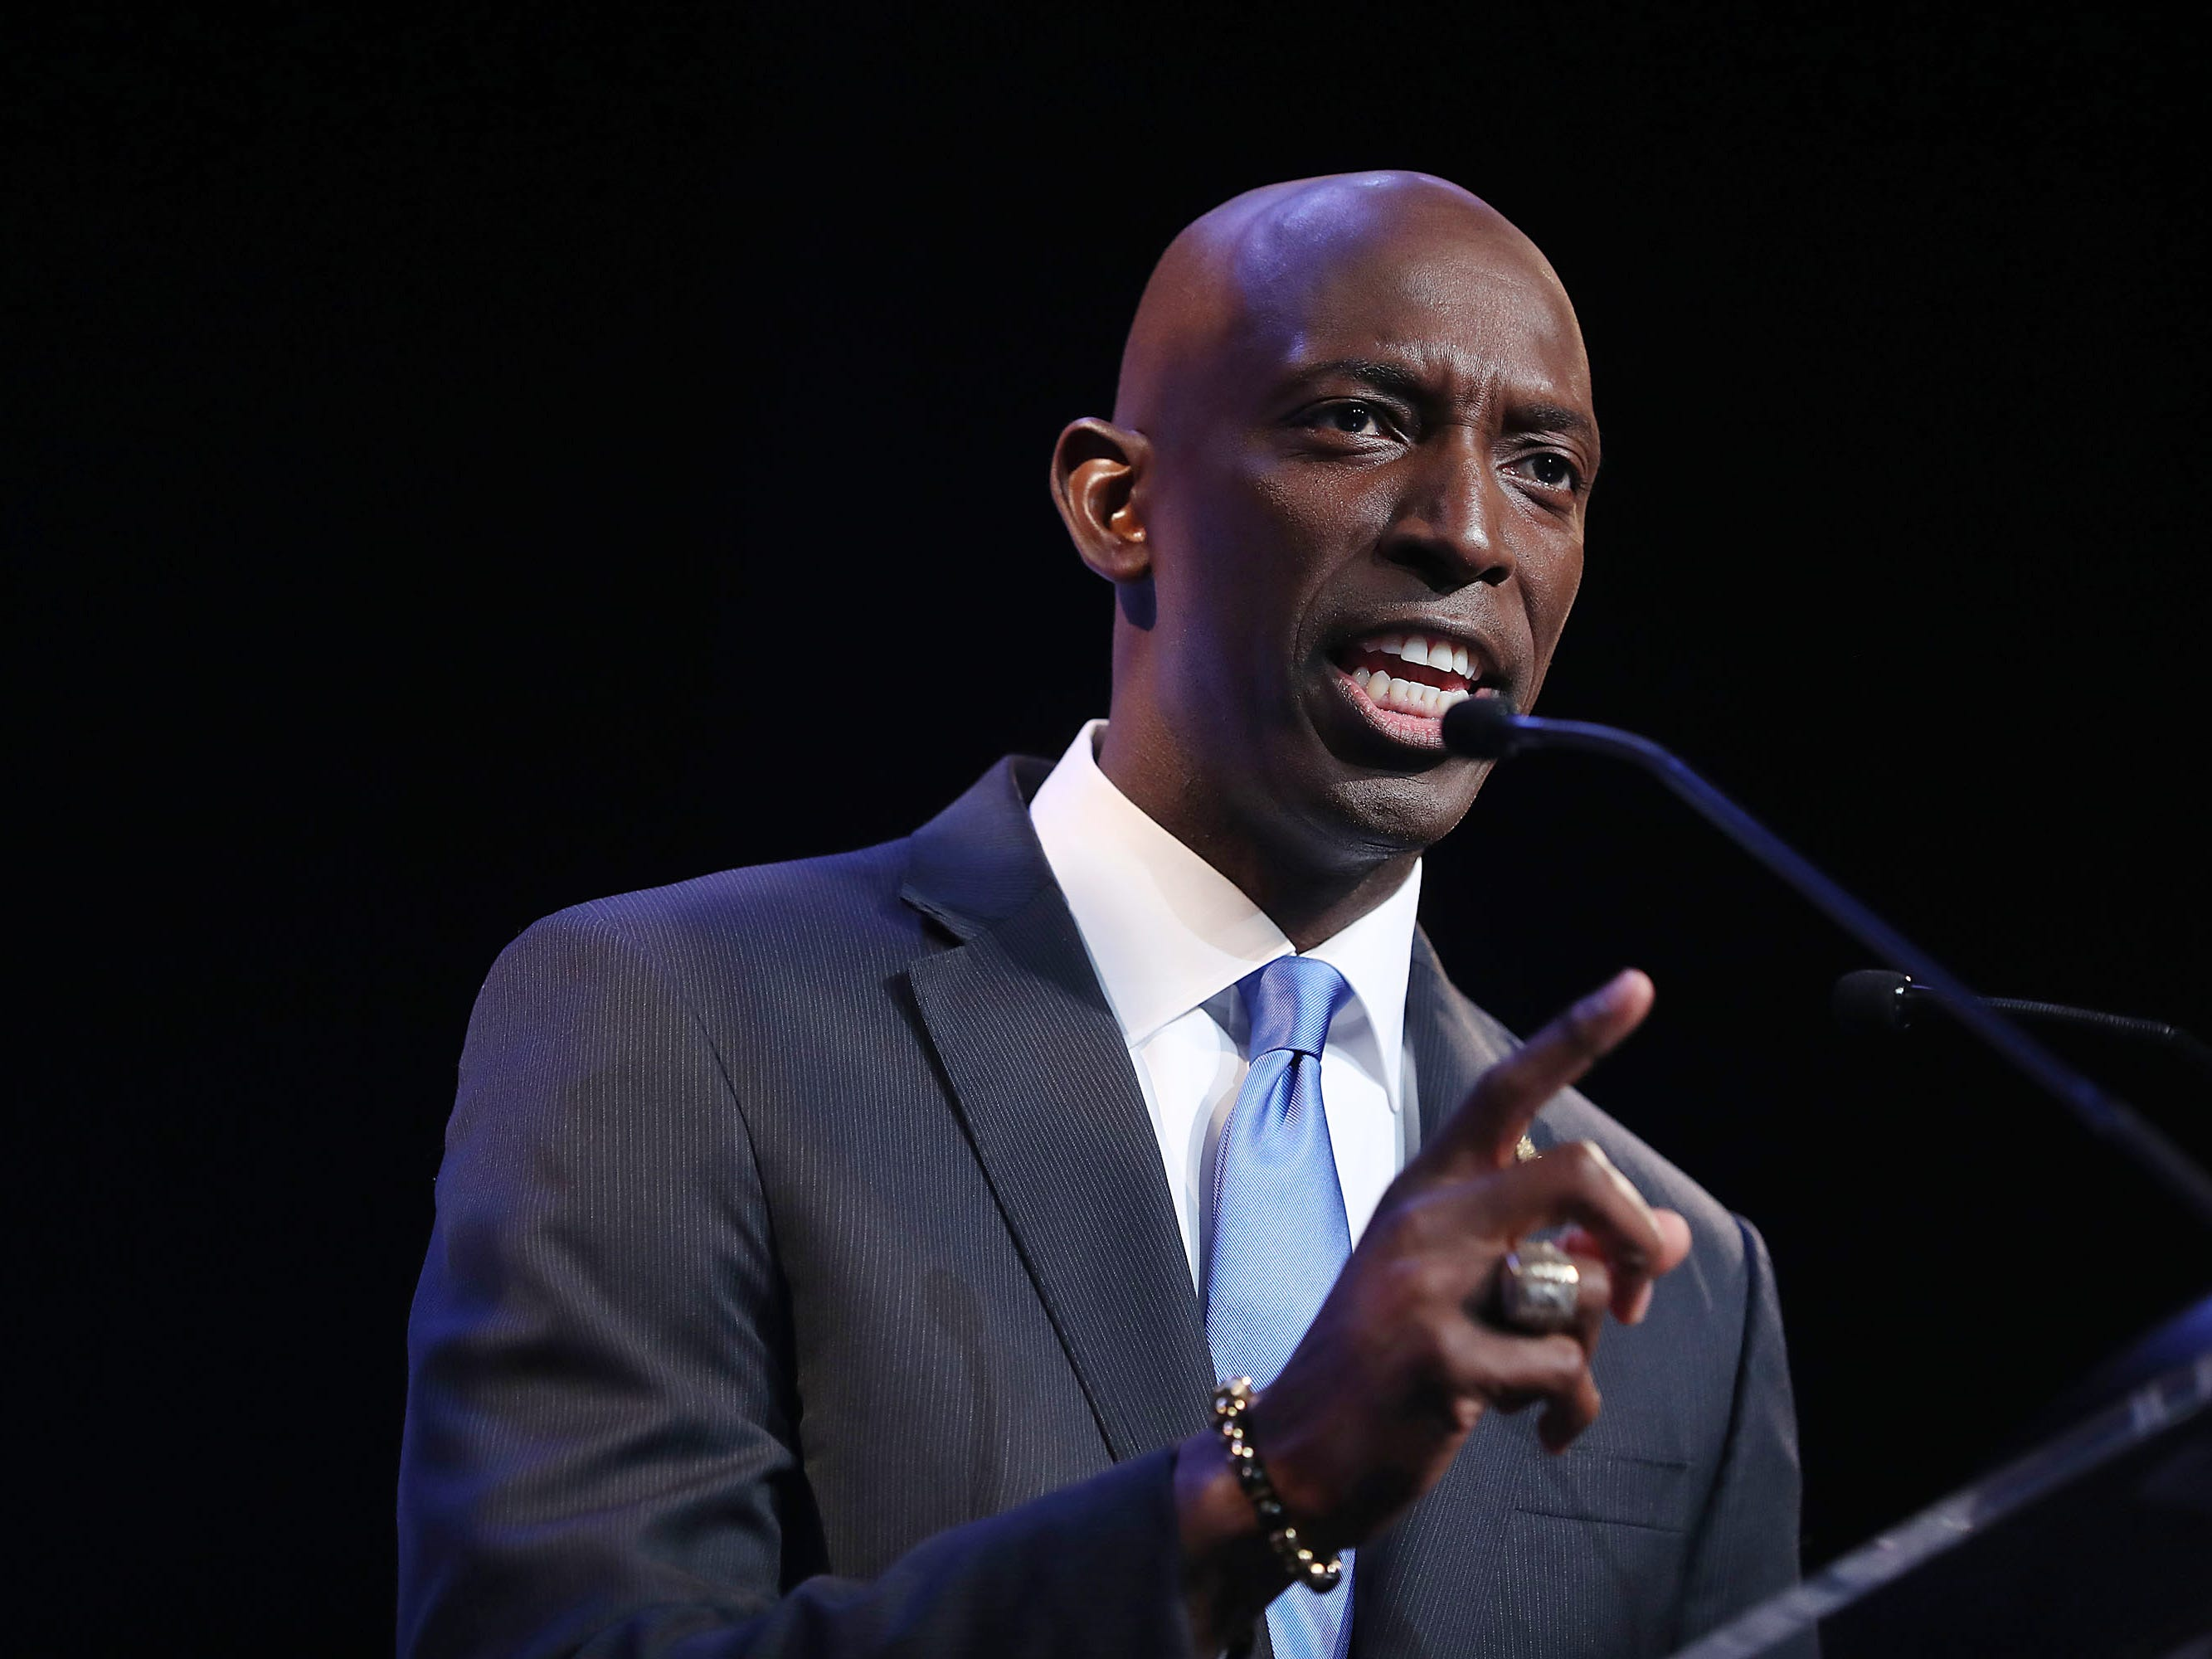 Wayne Messam, the mayor of Miramar, Fla. and a former Florida State football player, announced his plans to run for president in a video released on March 28, 2019.